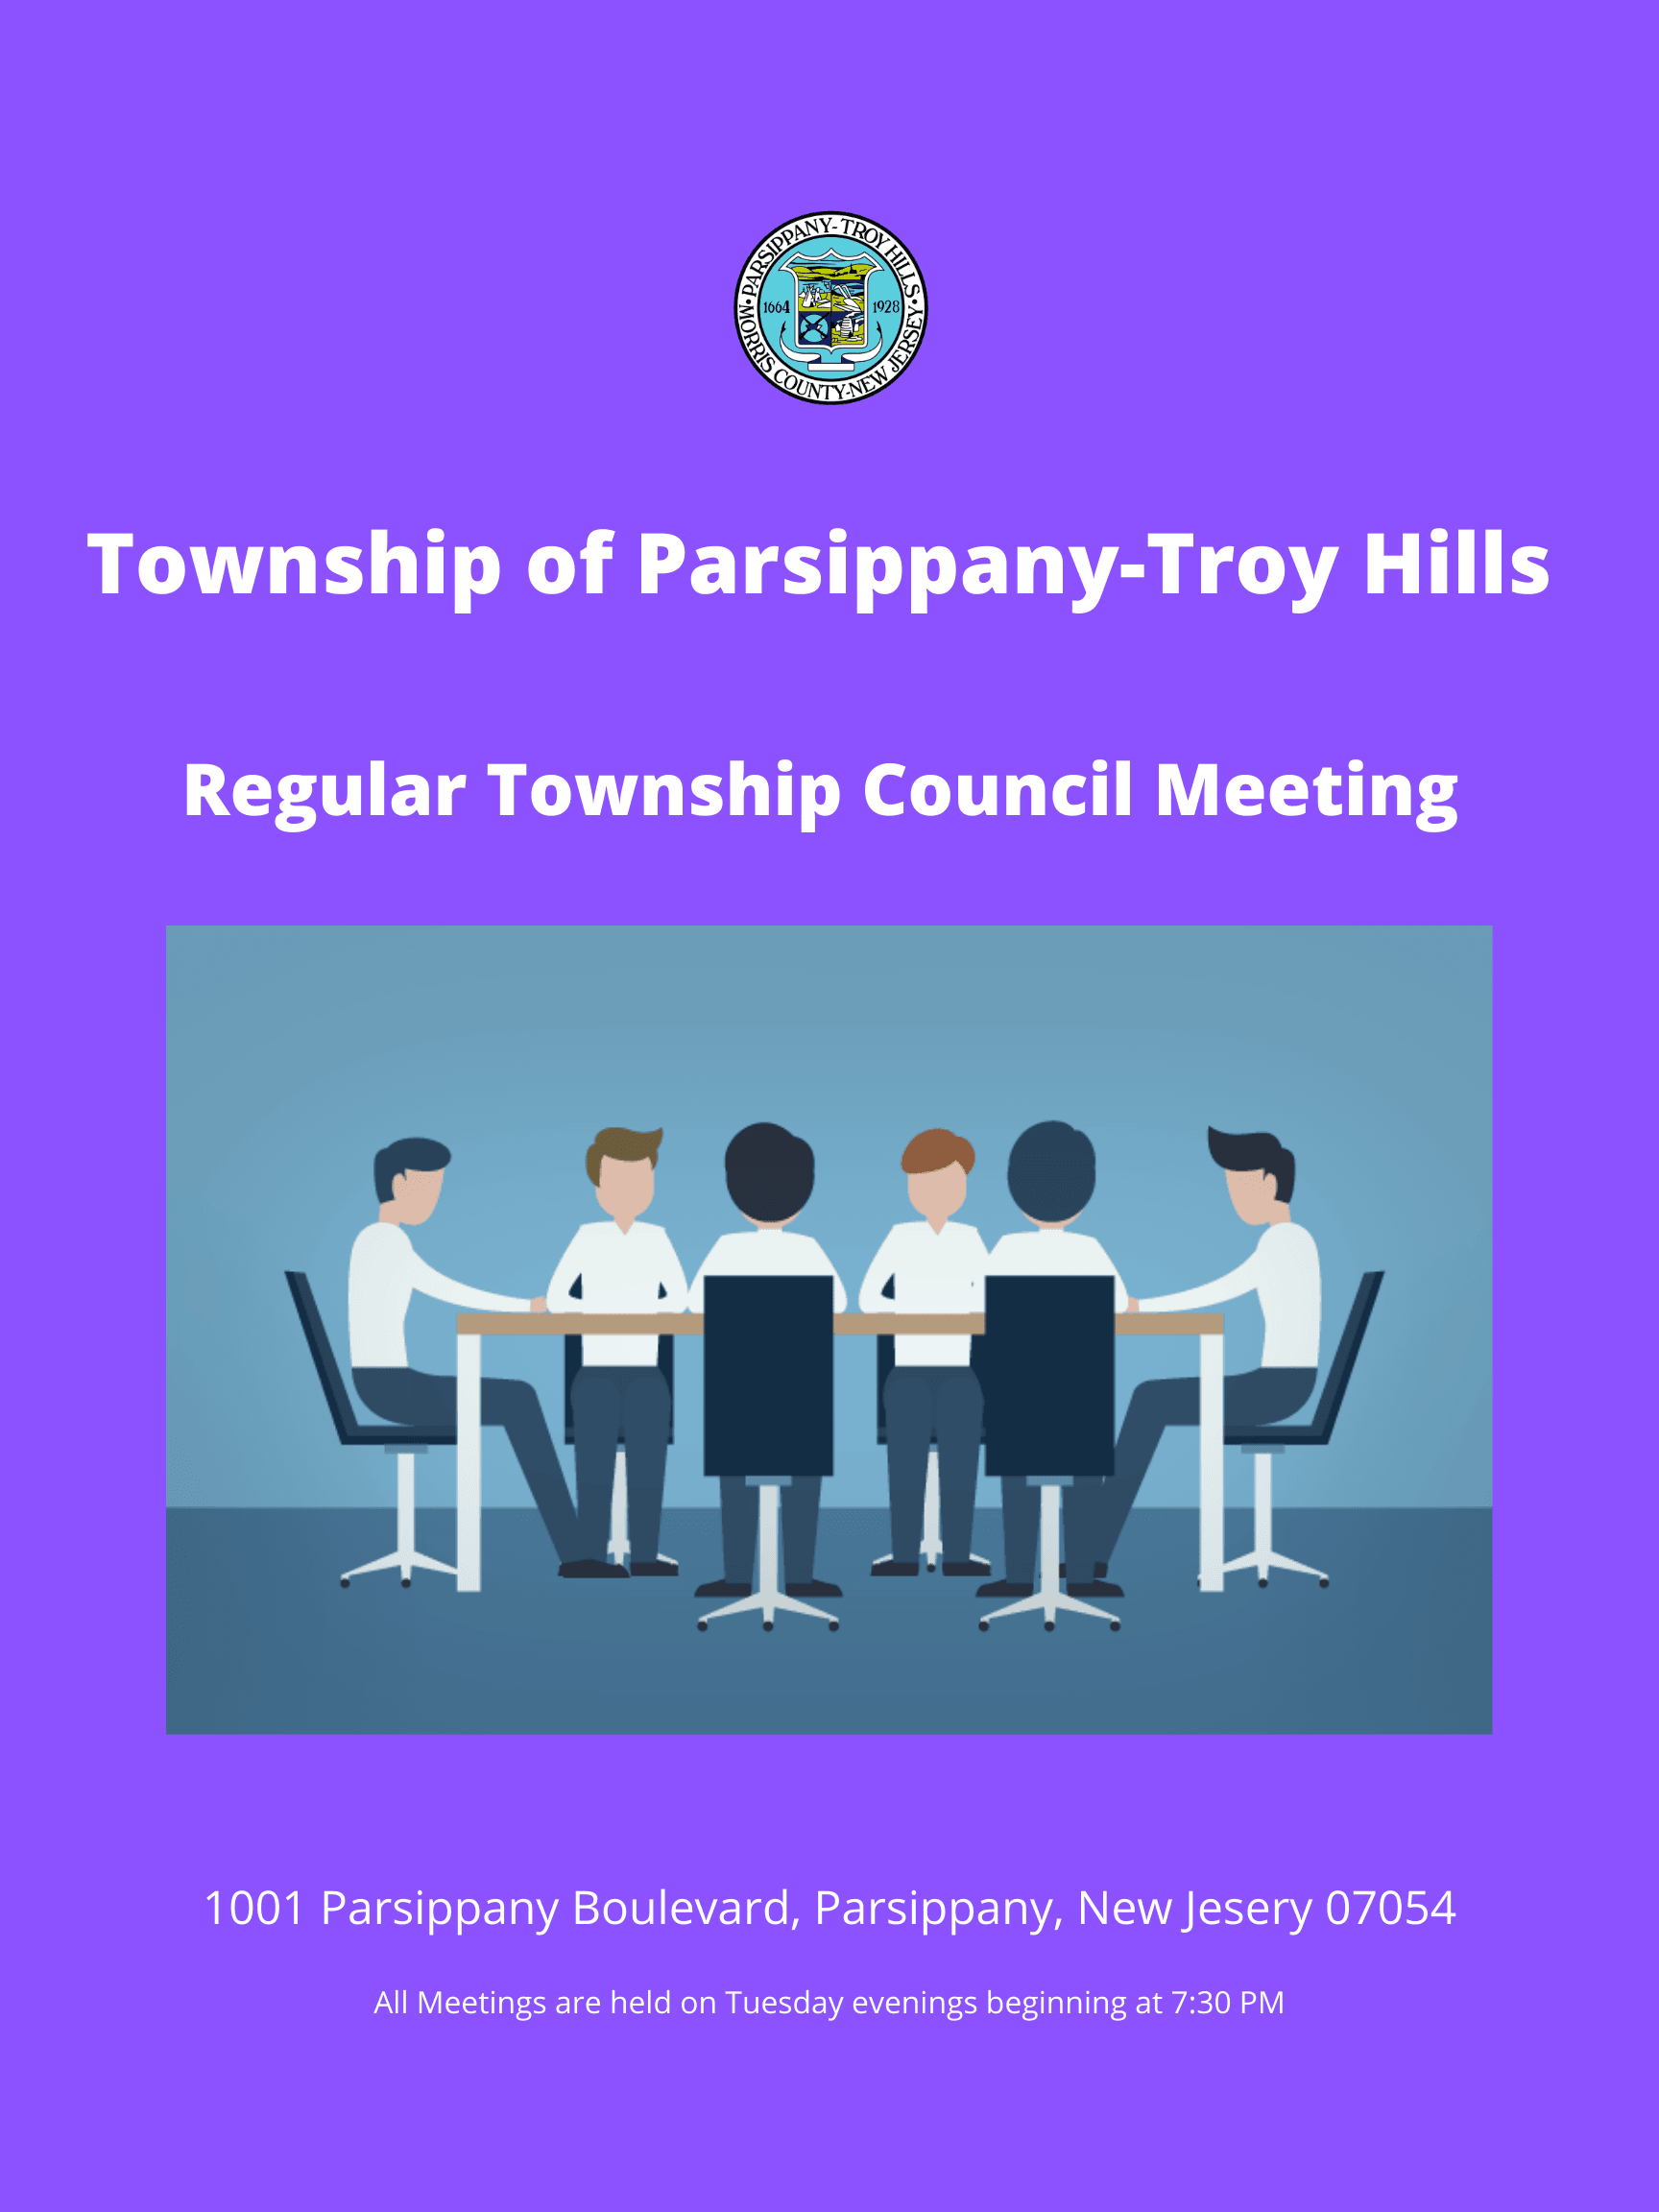 Township of Parsippany-Troy Hills Regular Township Council Meeting